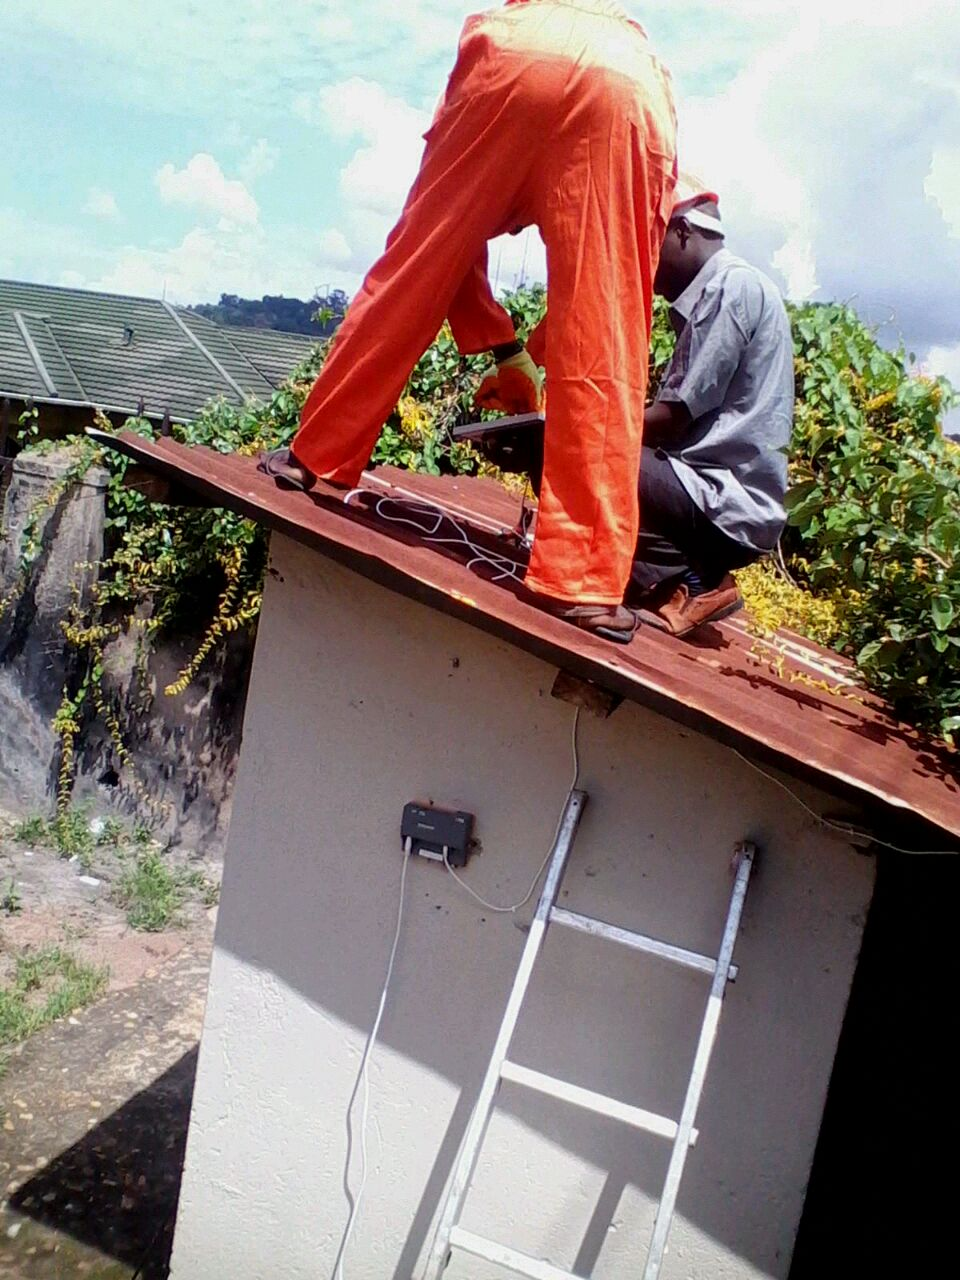 Learning soalr panel installation on the roof. At Barefoot Power..jpg